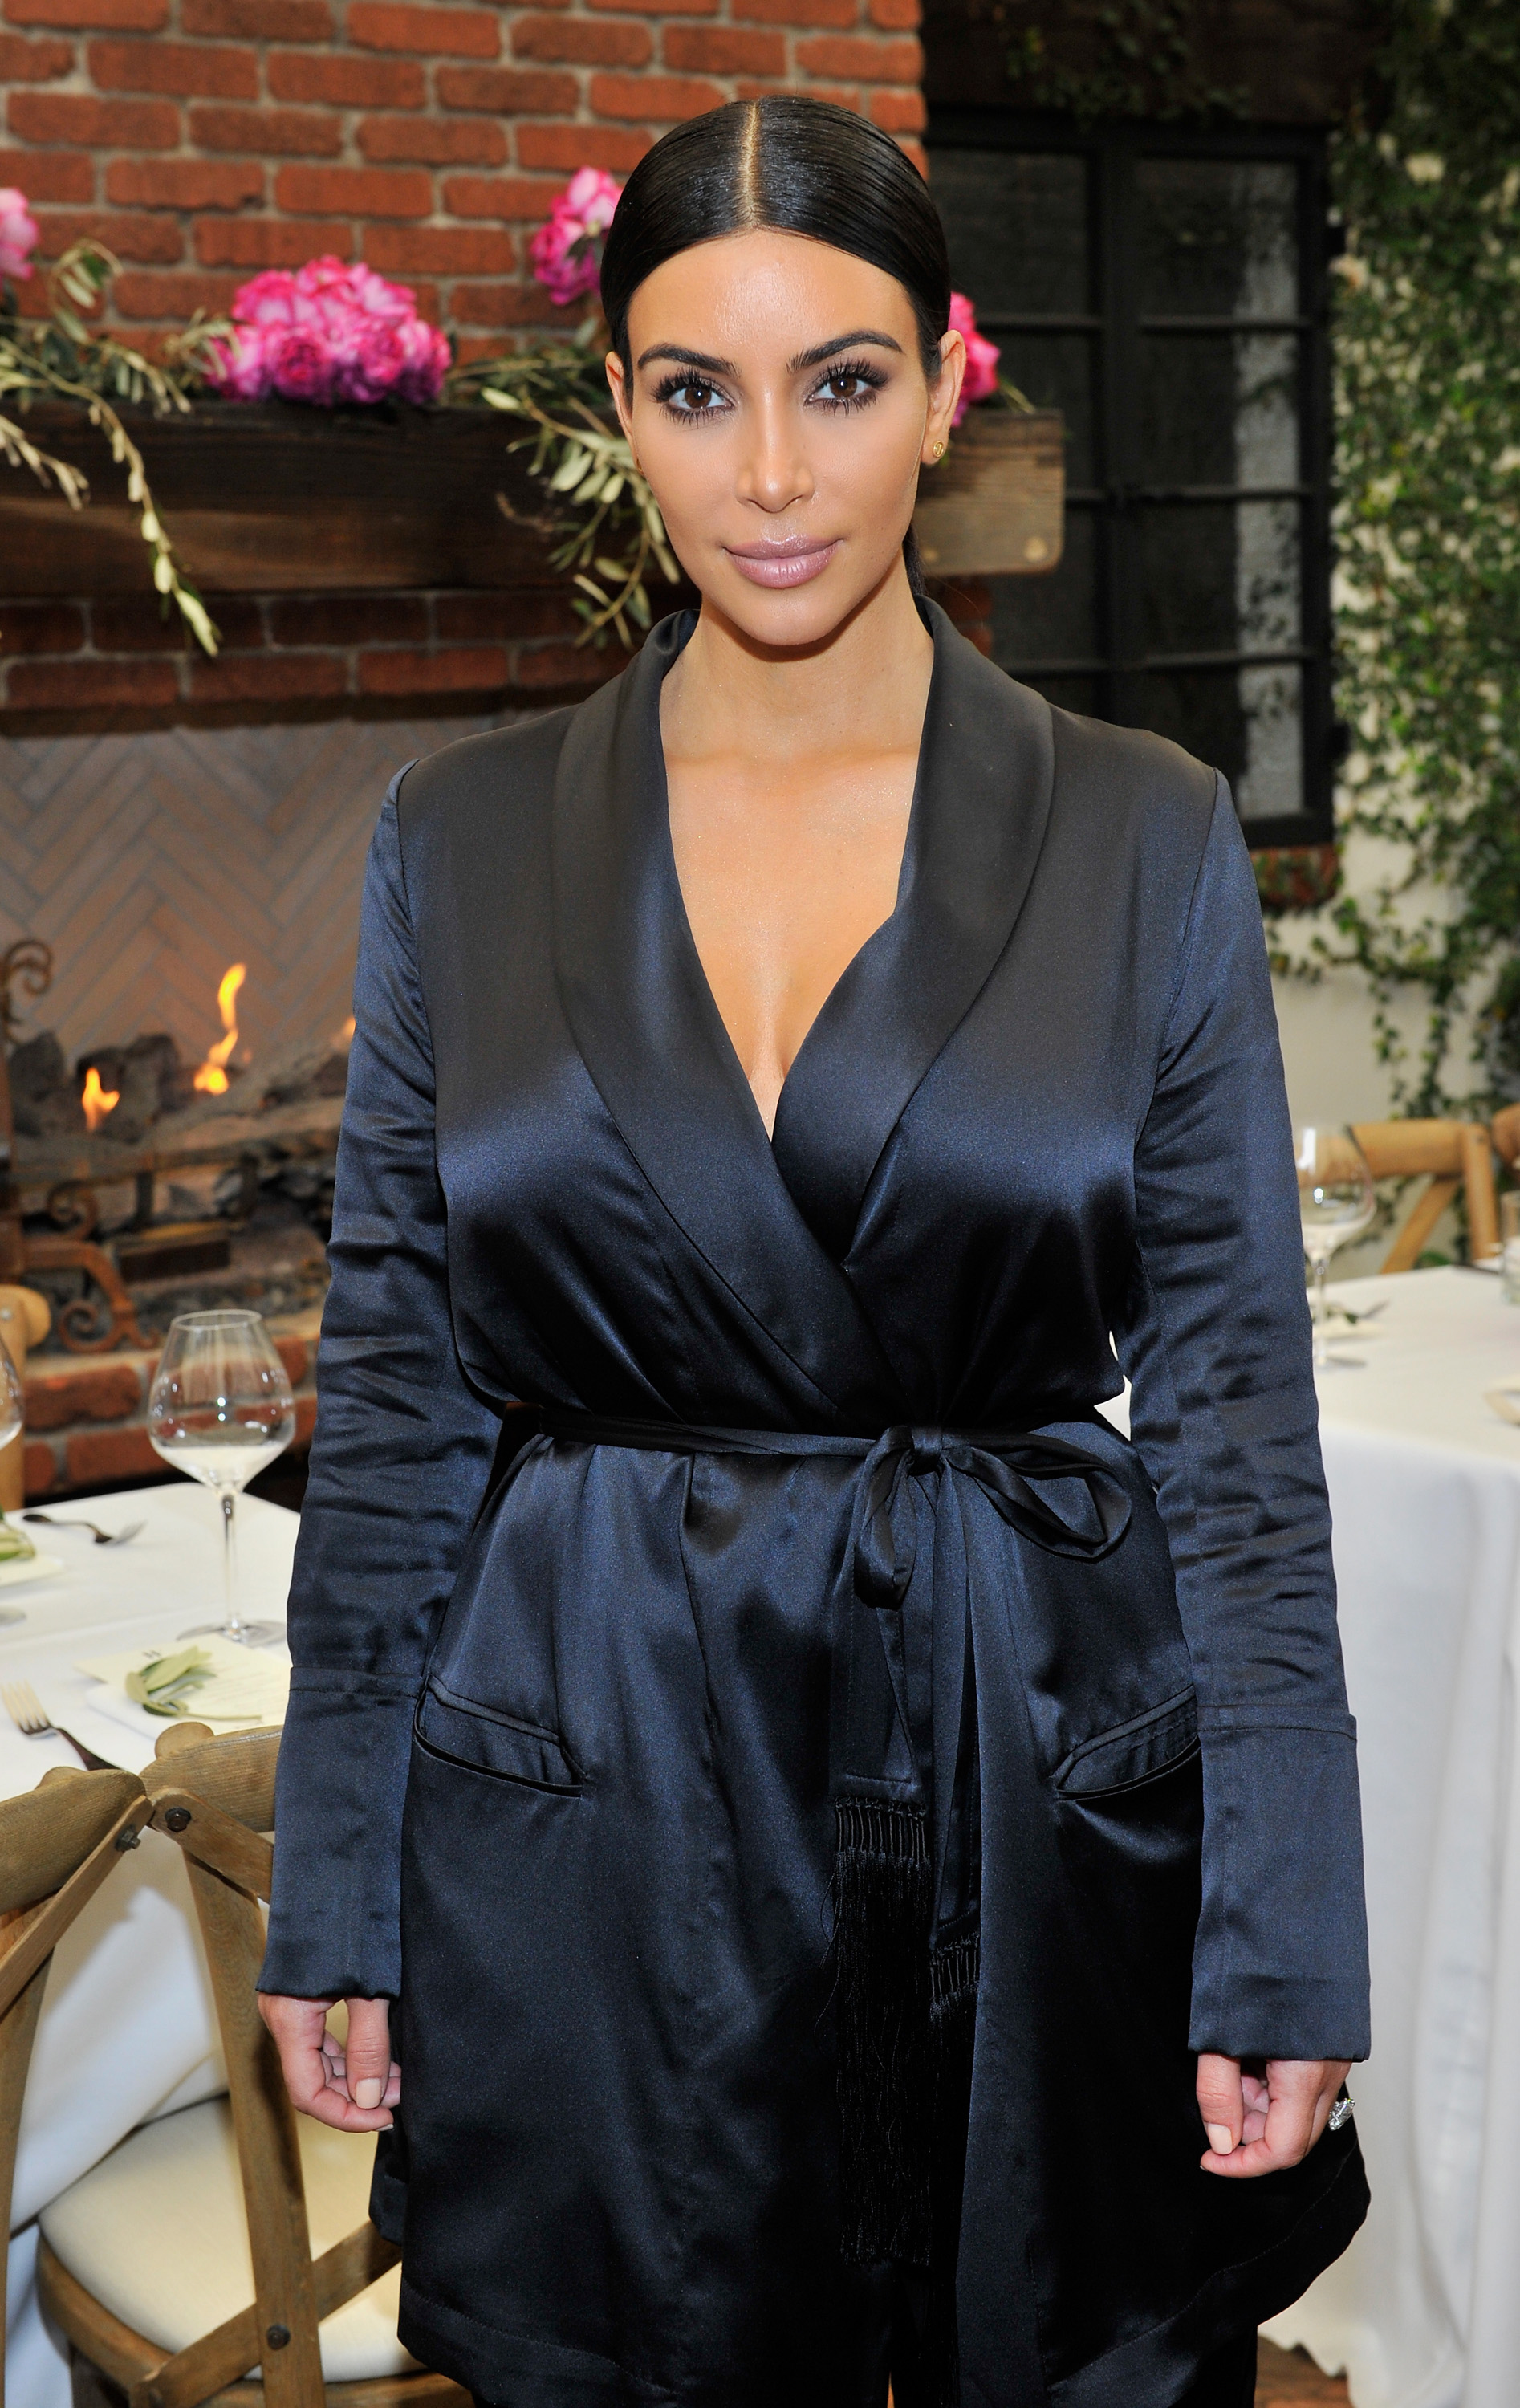 TV personality Kim Kardashian attends Lynn Hirschberg Celebrates W's It Girls with Piaget and Dom Perignon at A.O.C on January 10, 2015 in Los Angeles, California.